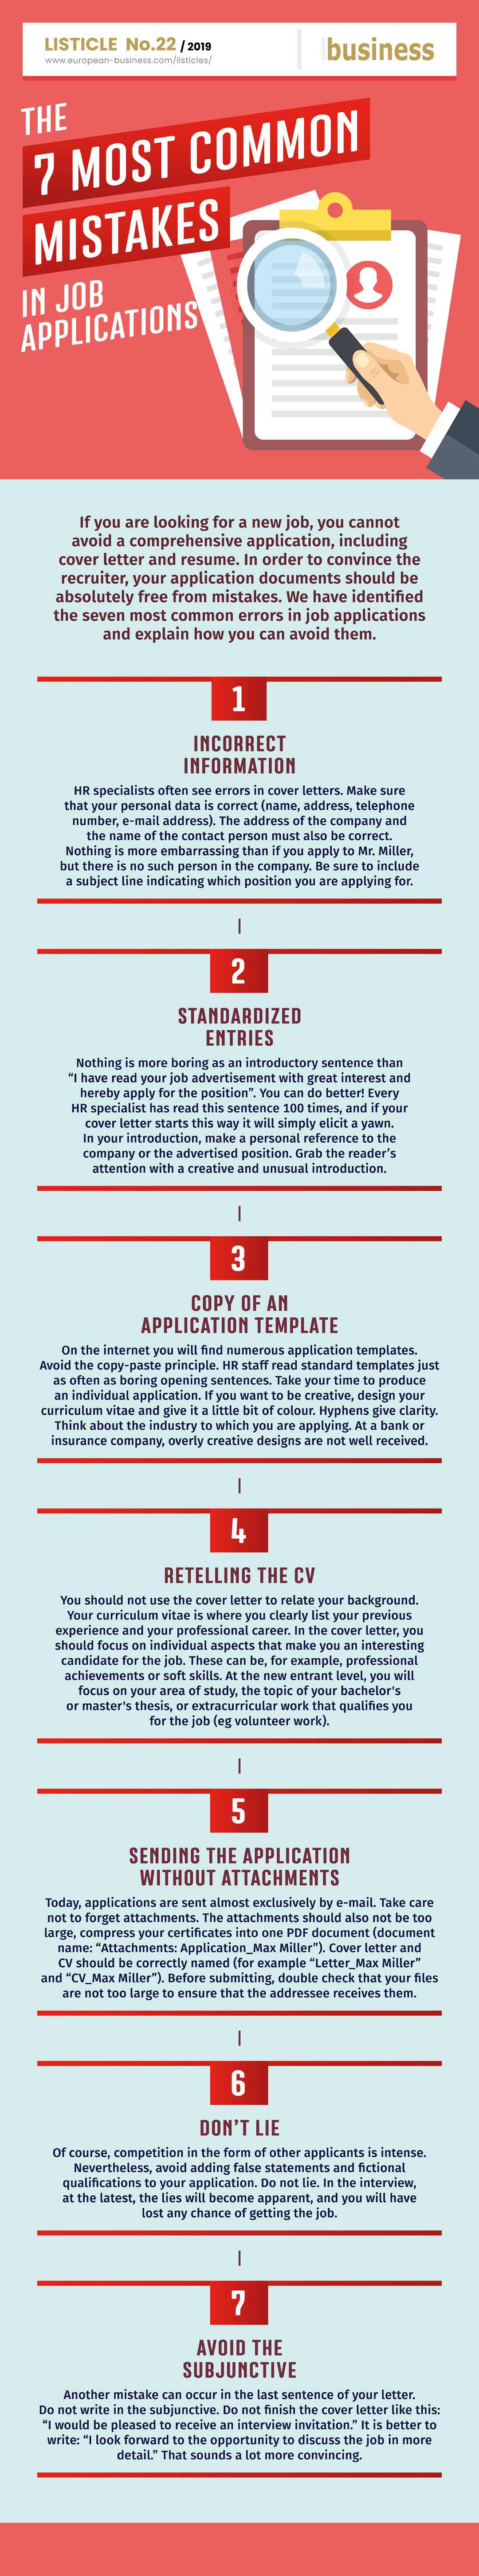 The 7 most common mistakes in job applications